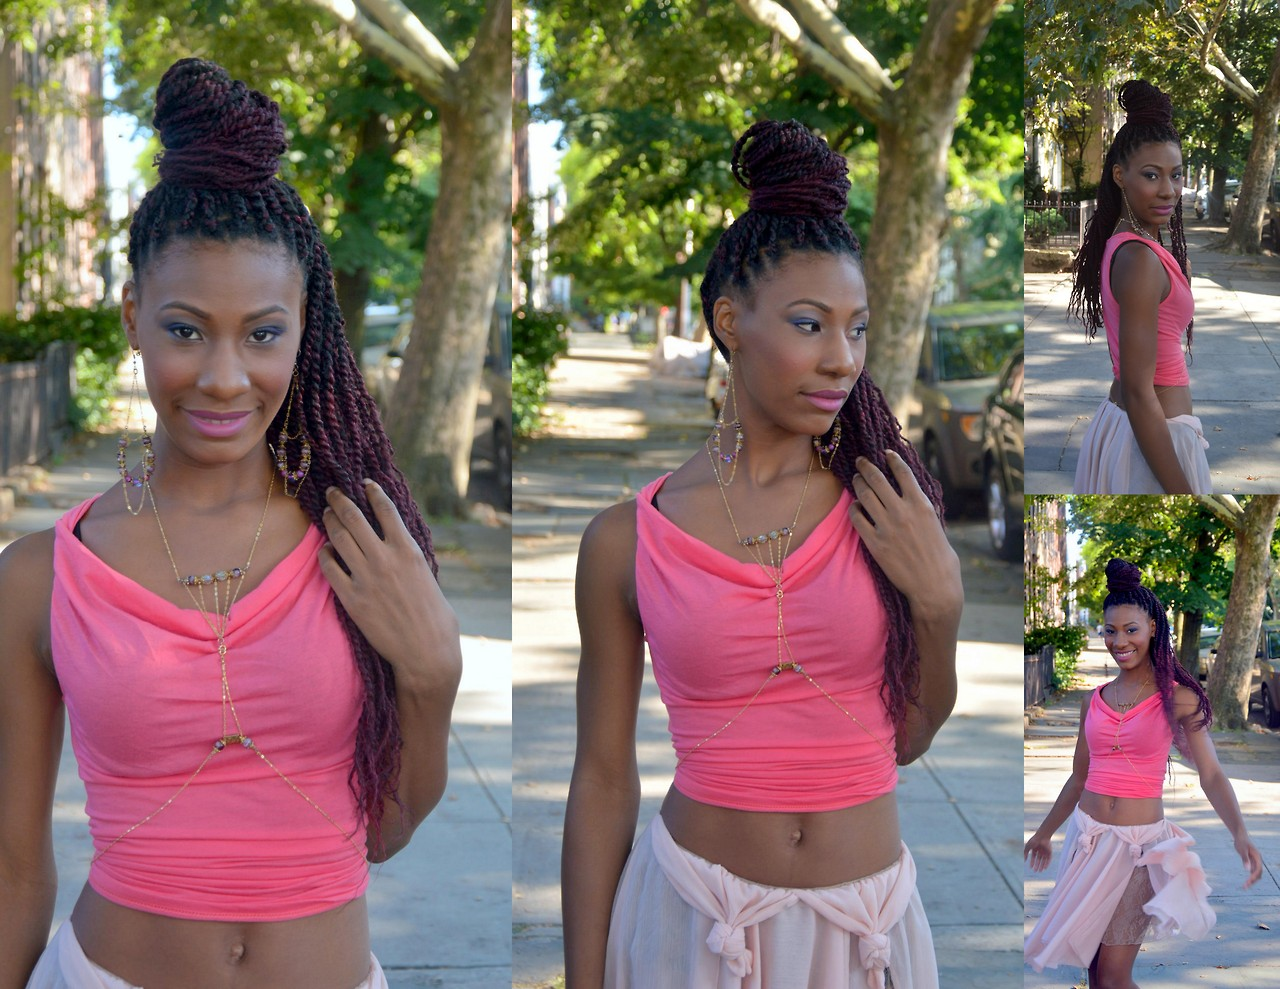 """""""The Sisters"""" modeling the Spring/Summer 2015 collection """"The Butterfly Link'      Photos by Delilah Peach Williams."""